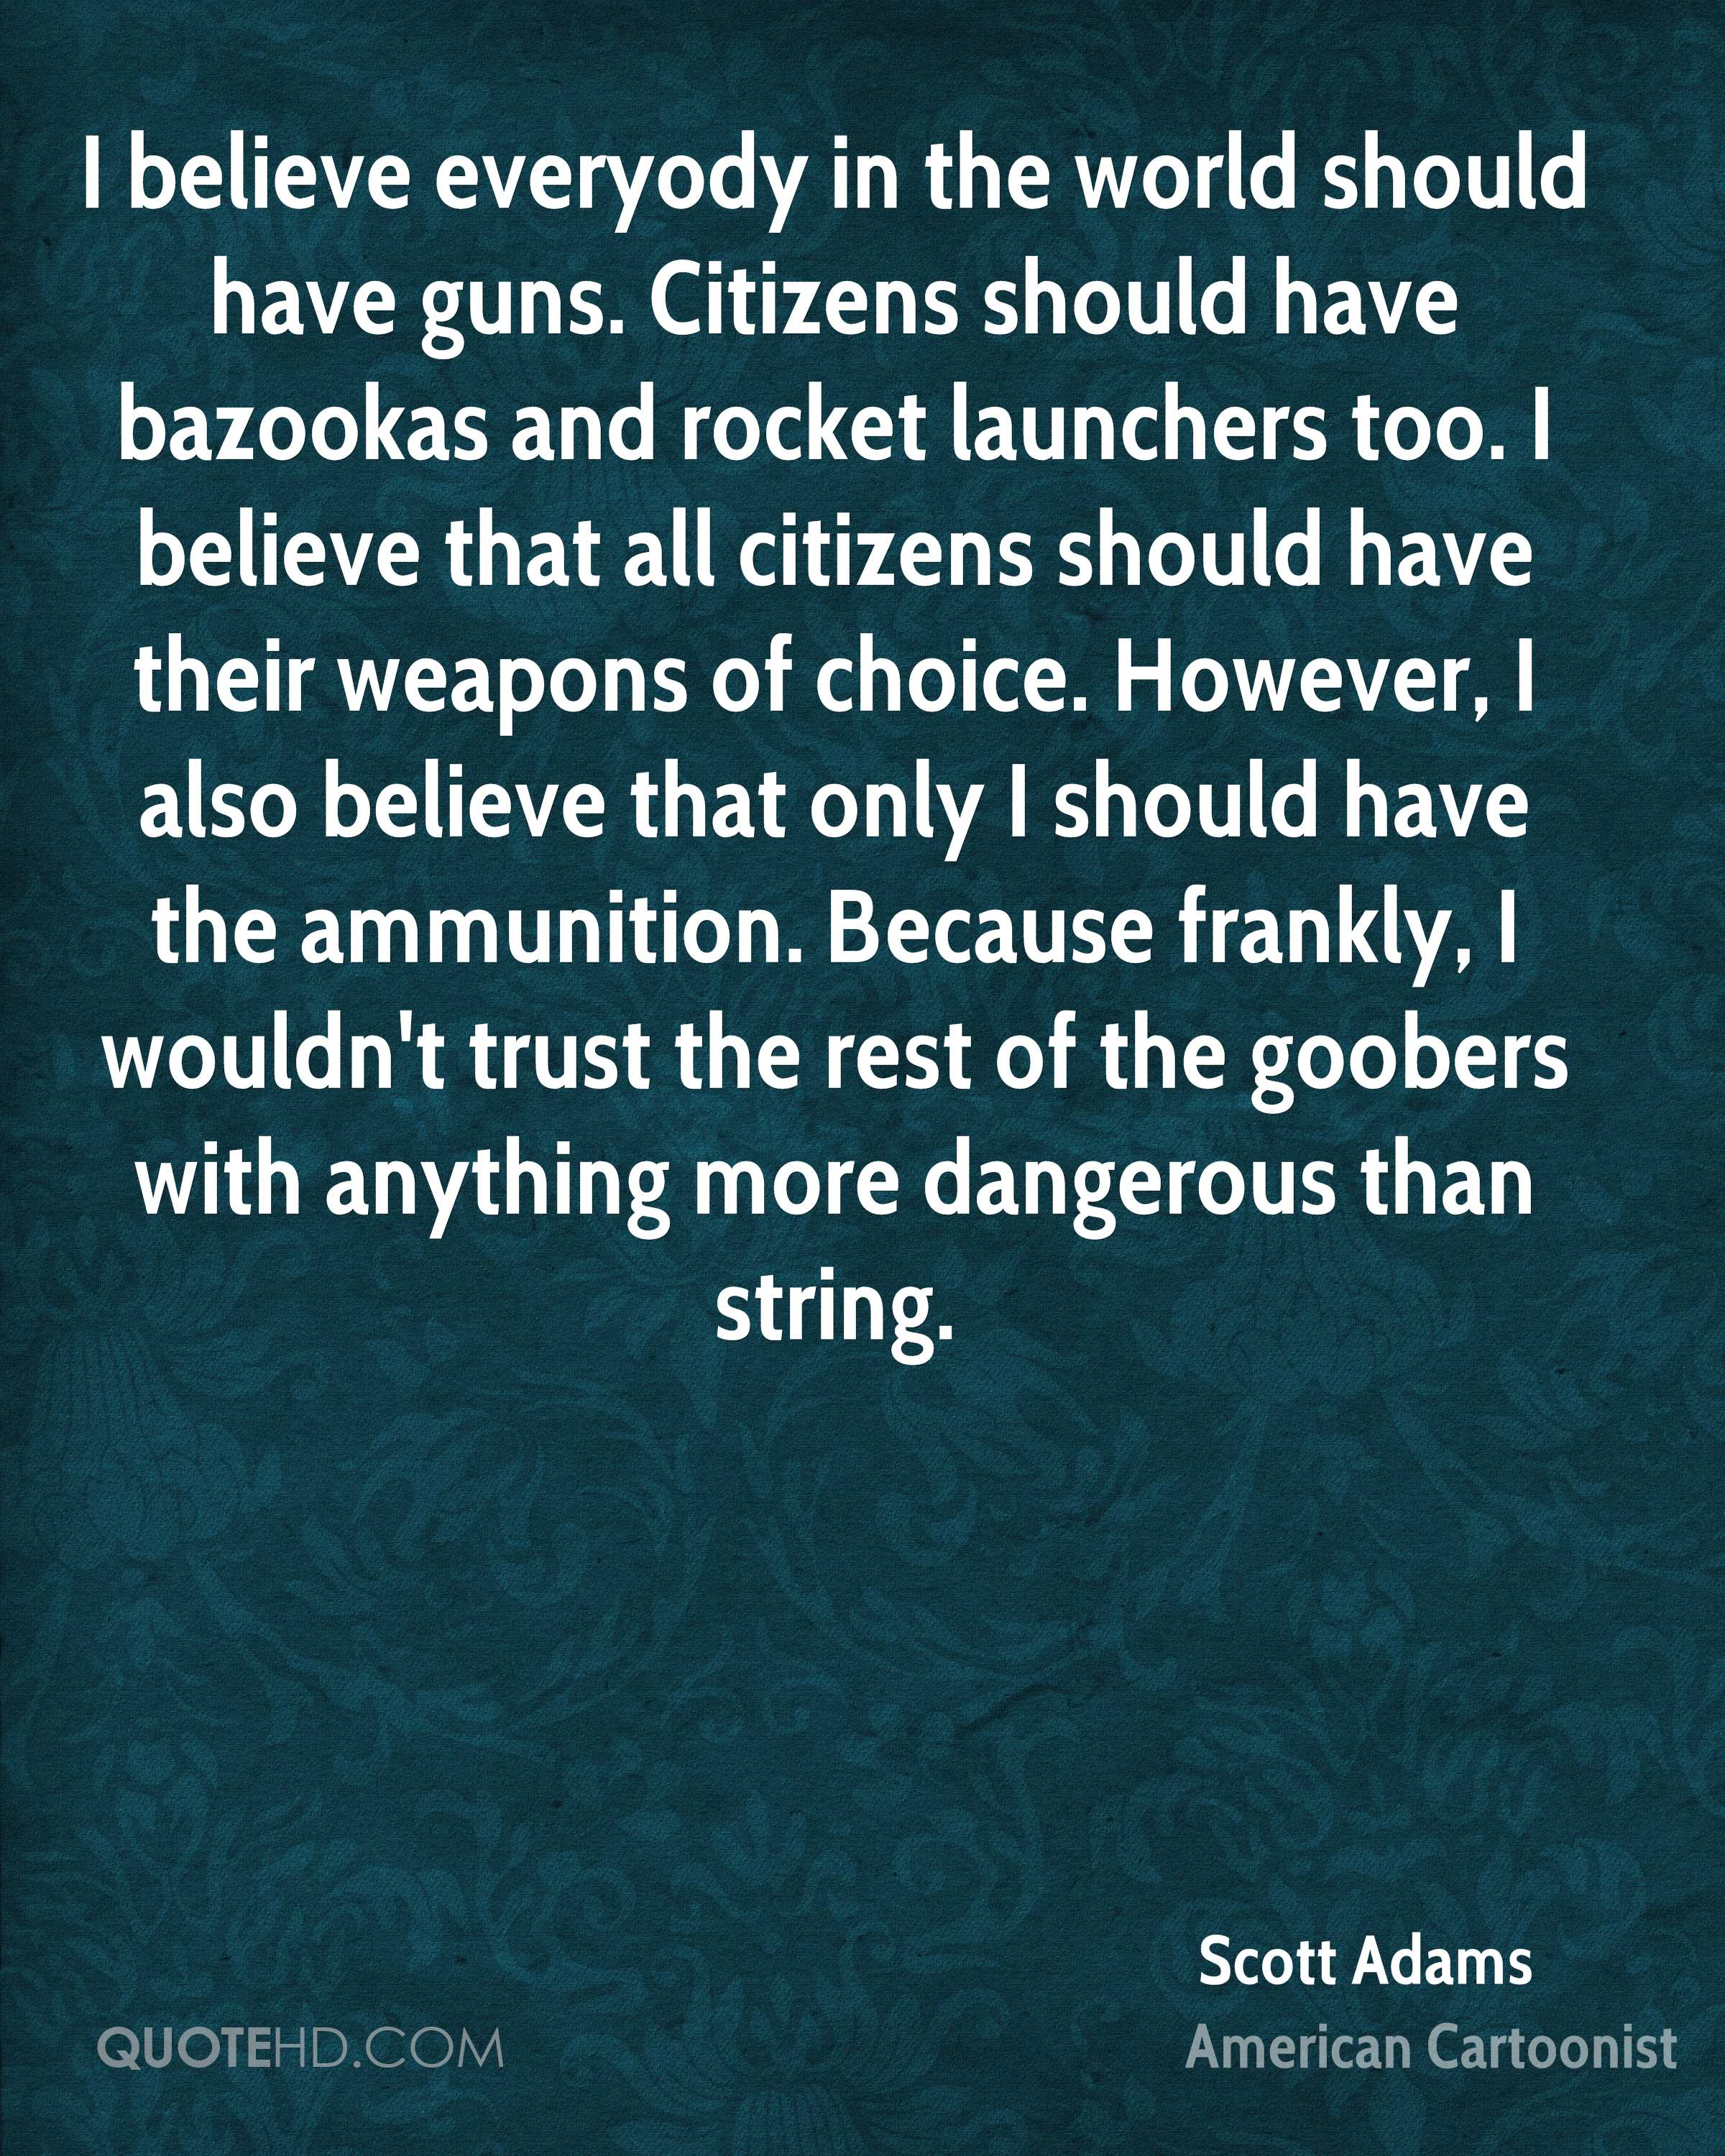 I believe everyody in the world should have guns. Citizens should have bazookas and rocket launchers too. I believe that all citizens should have their weapons of choice. However, I also believe that only I should have the ammunition. Because frankly, I wouldn't trust the rest of the goobers with anything more dangerous than string.